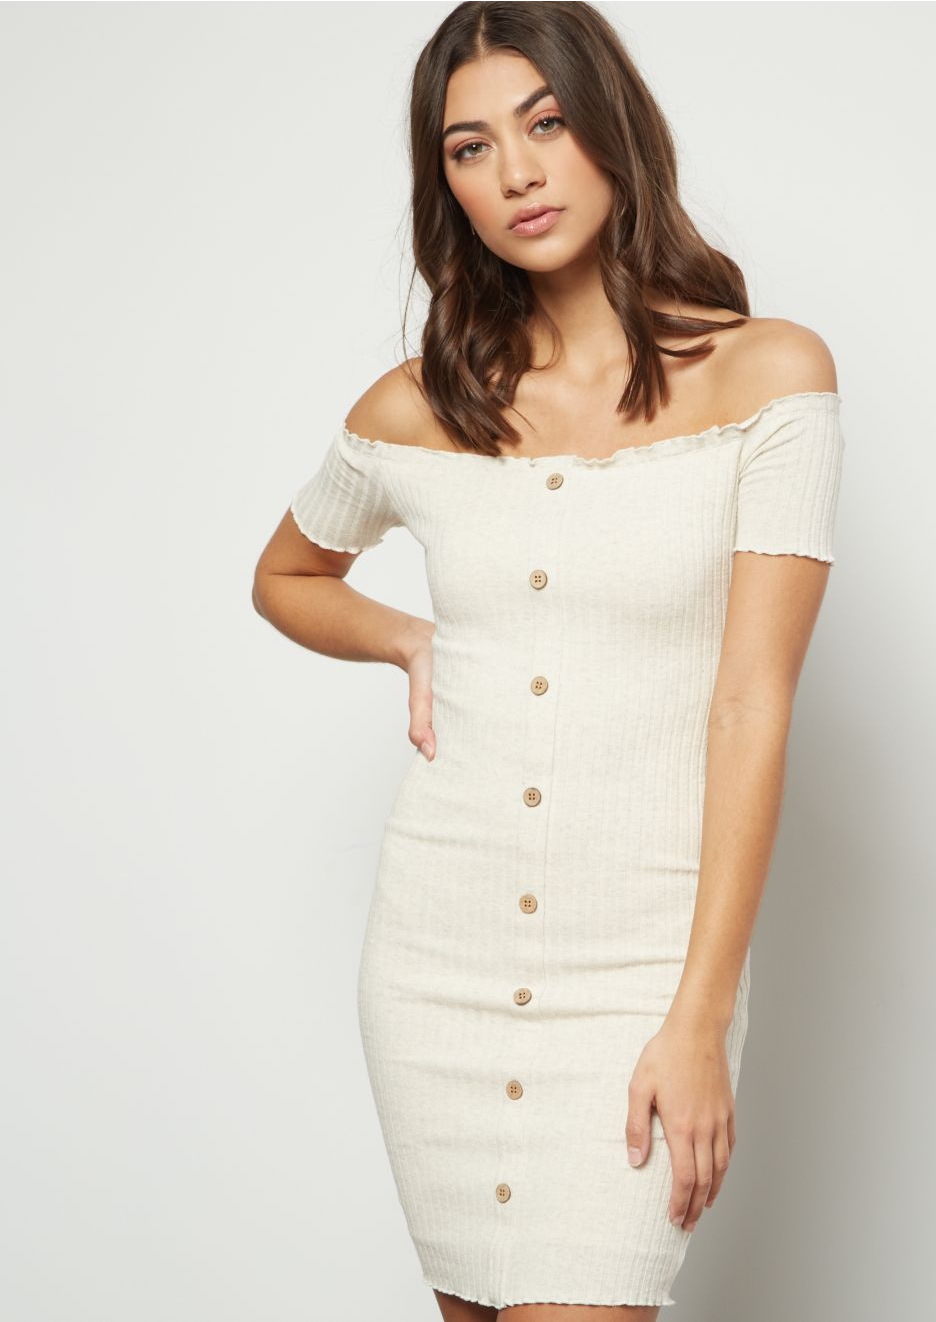 Ribbed Off The Shoulder Dress - Oatmeal - Vixen Boxx